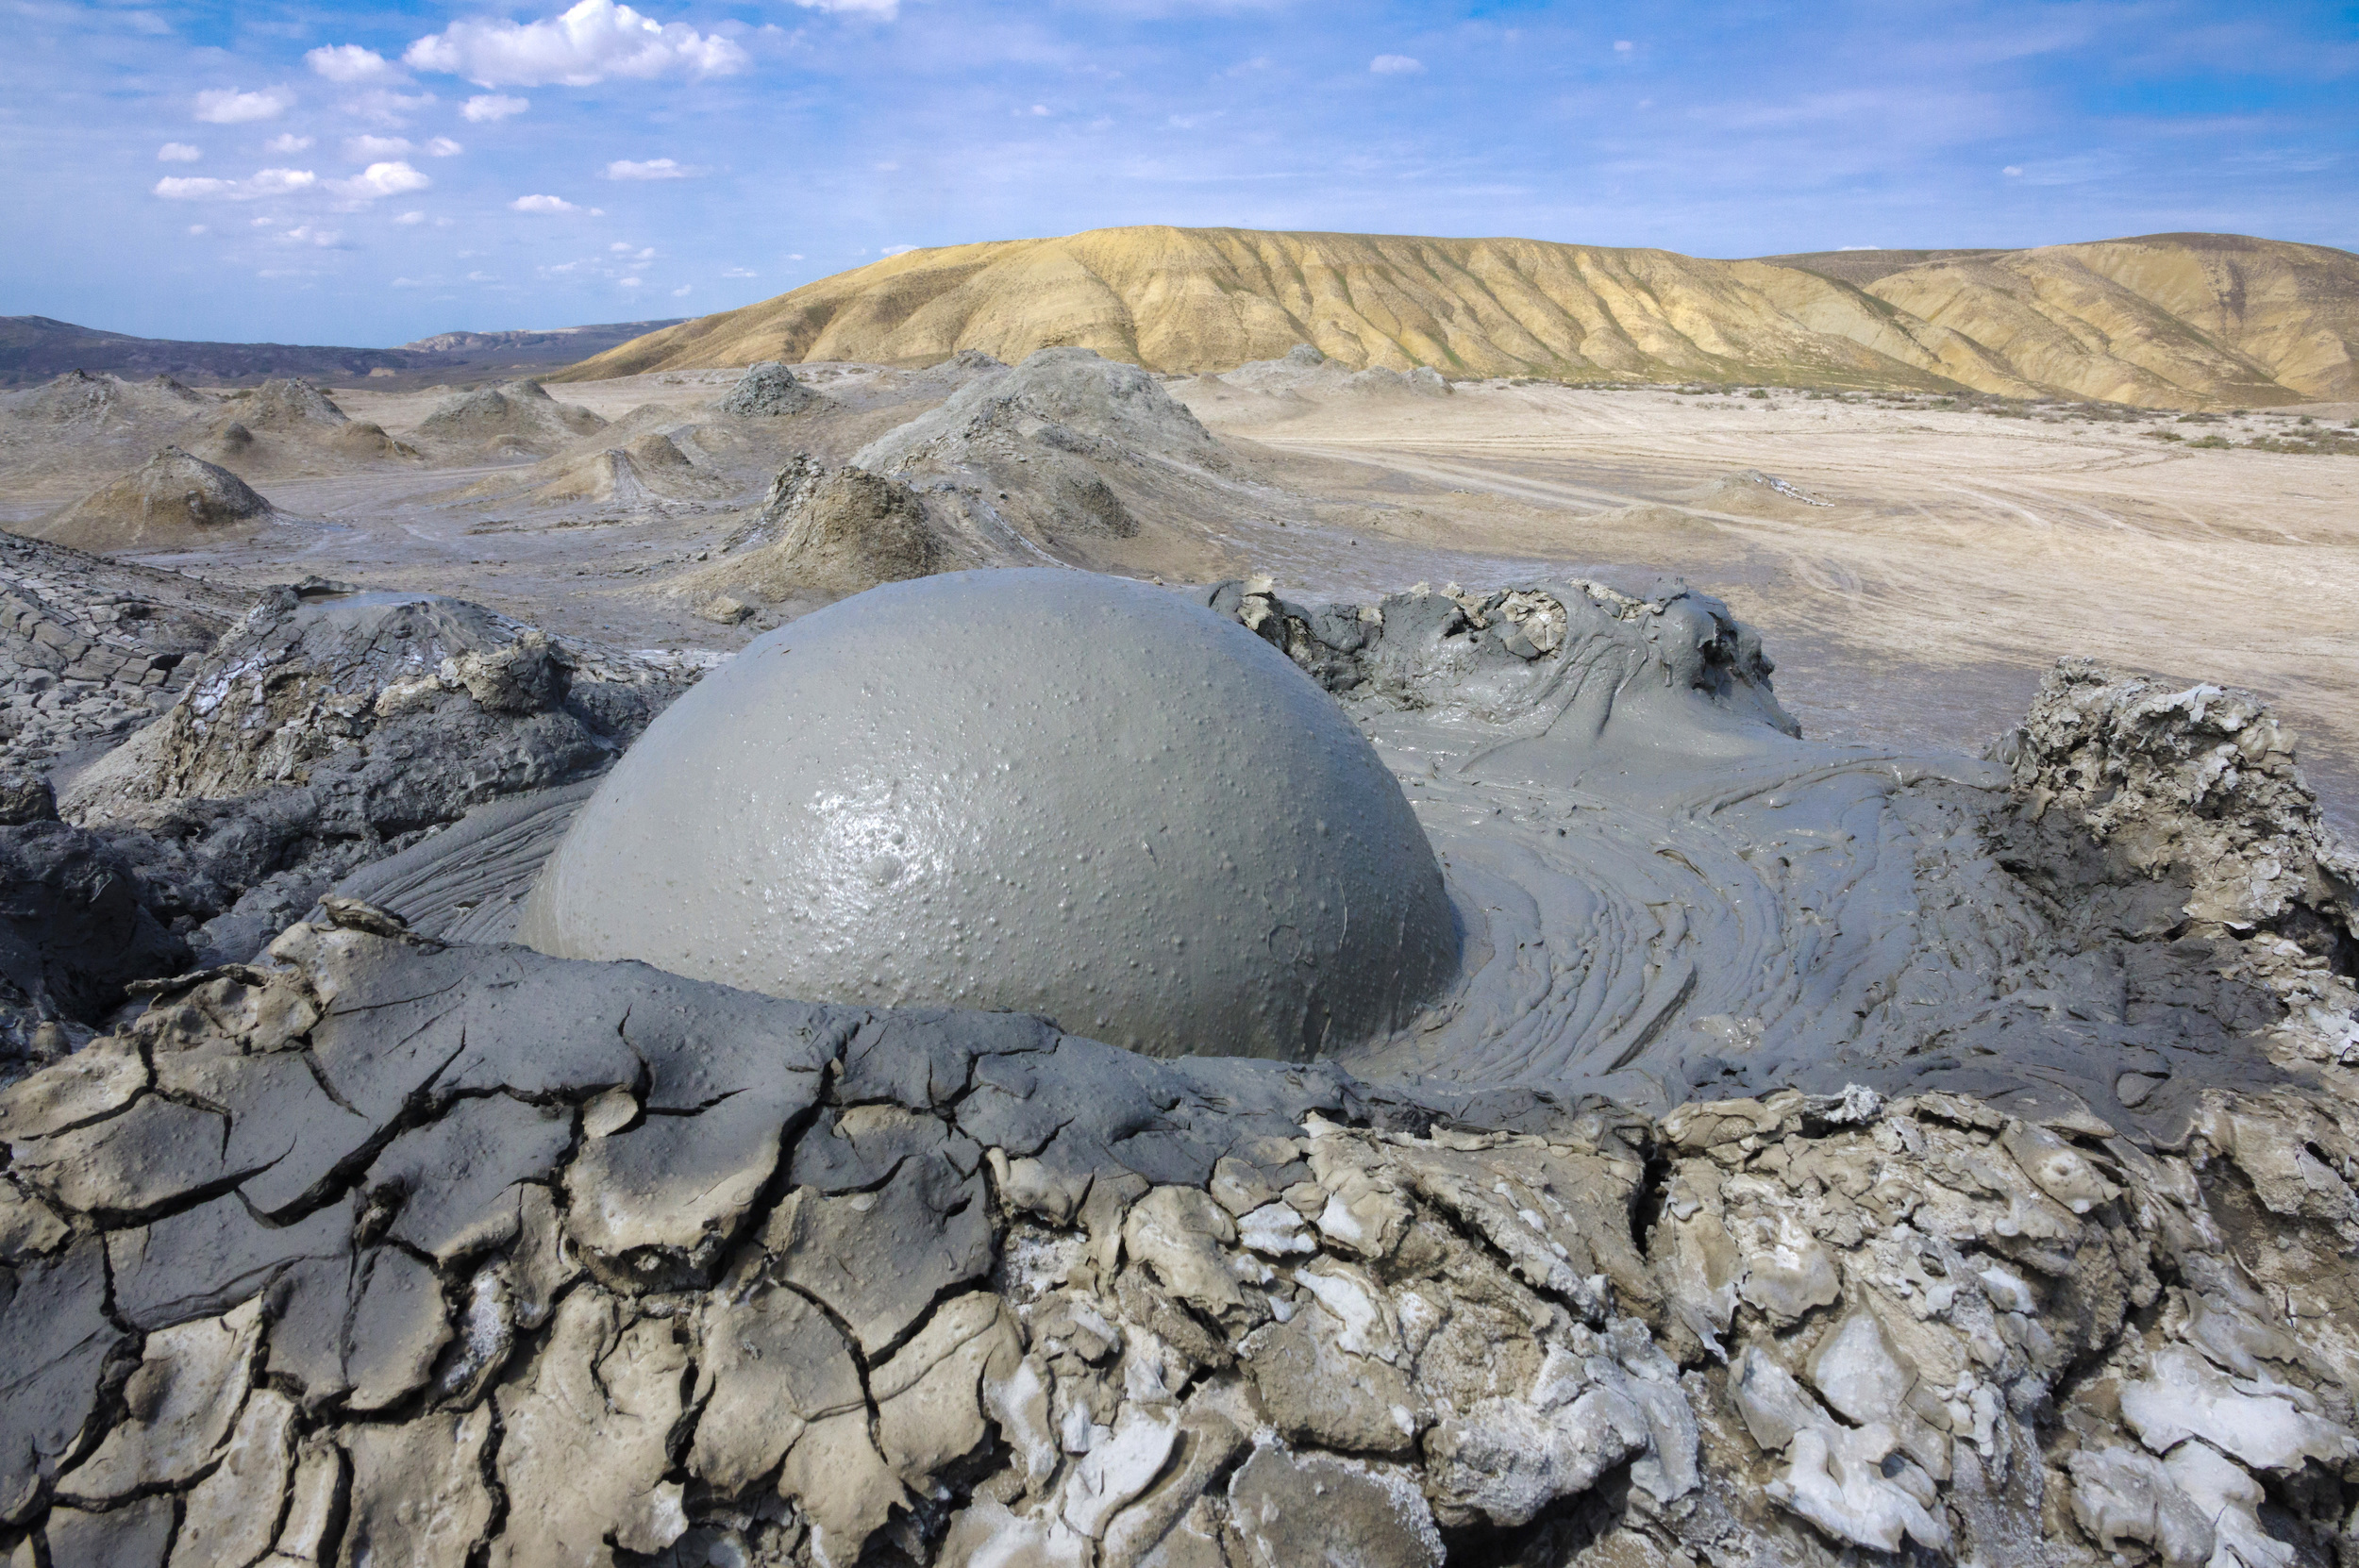 Mud volcanoes play a major role in the global methane cycle that has been largely overlooked and underestimated.